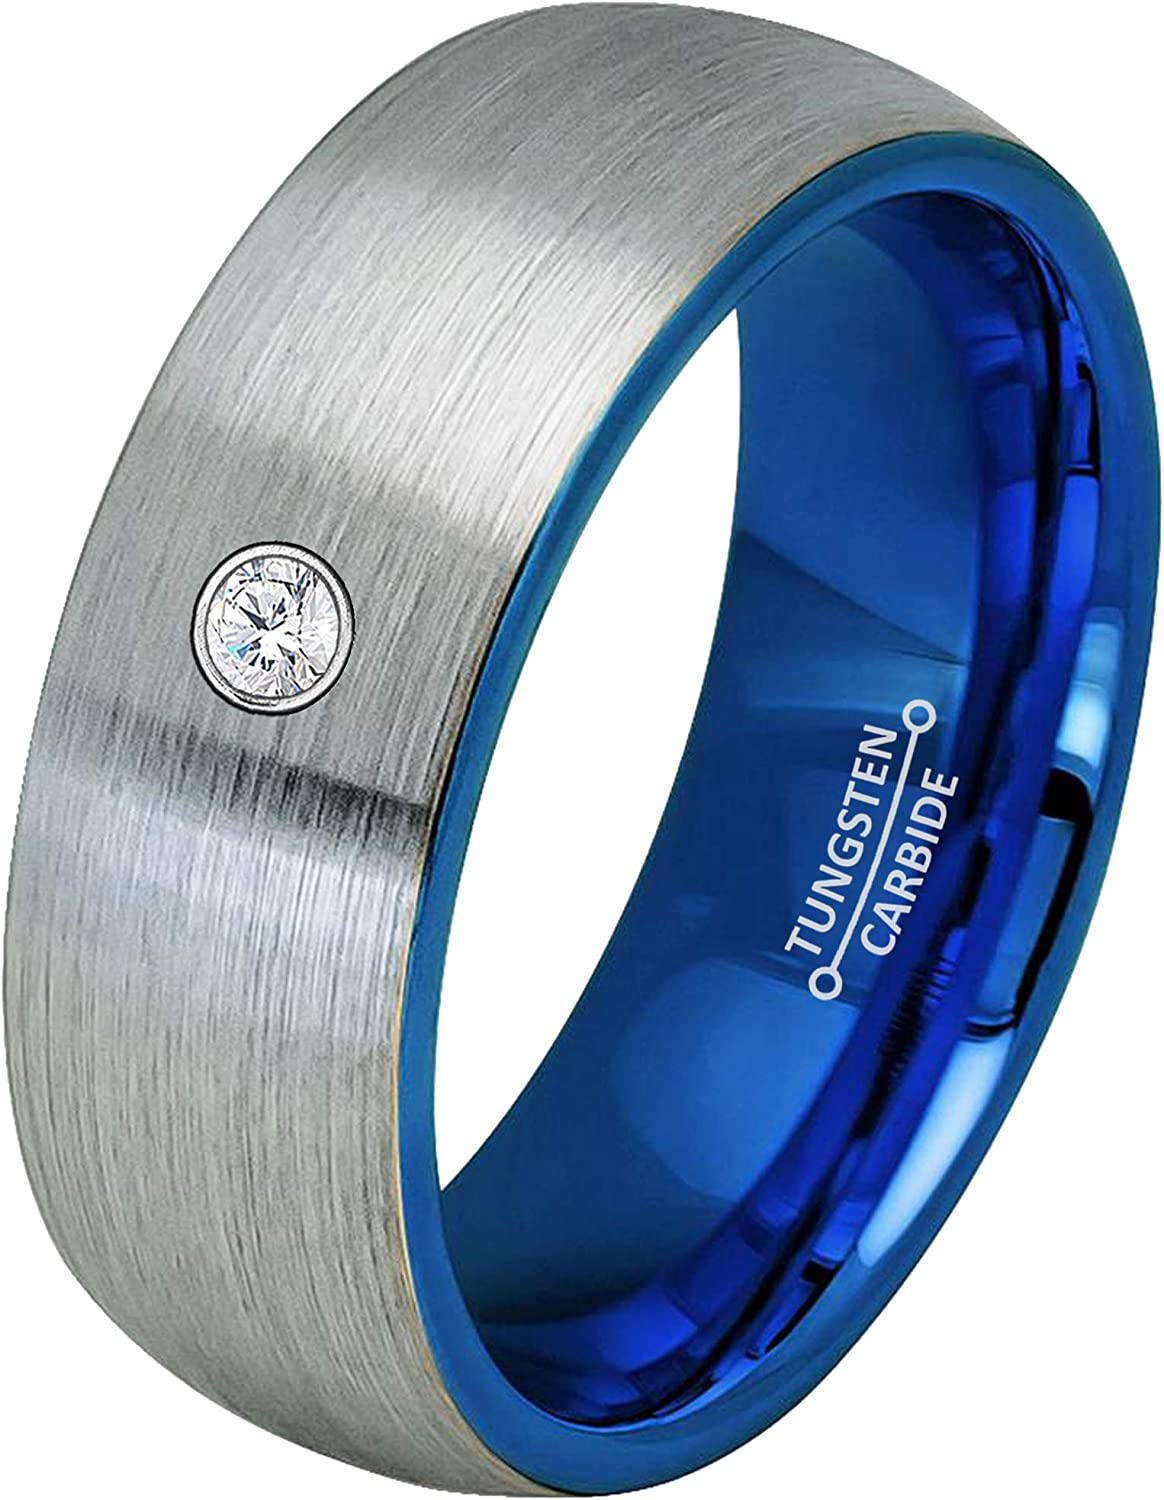 0.07ct Diamond Regular dealer Tungsten Ring - Two-T Birthstone Dome 8MM Max 59% OFF April